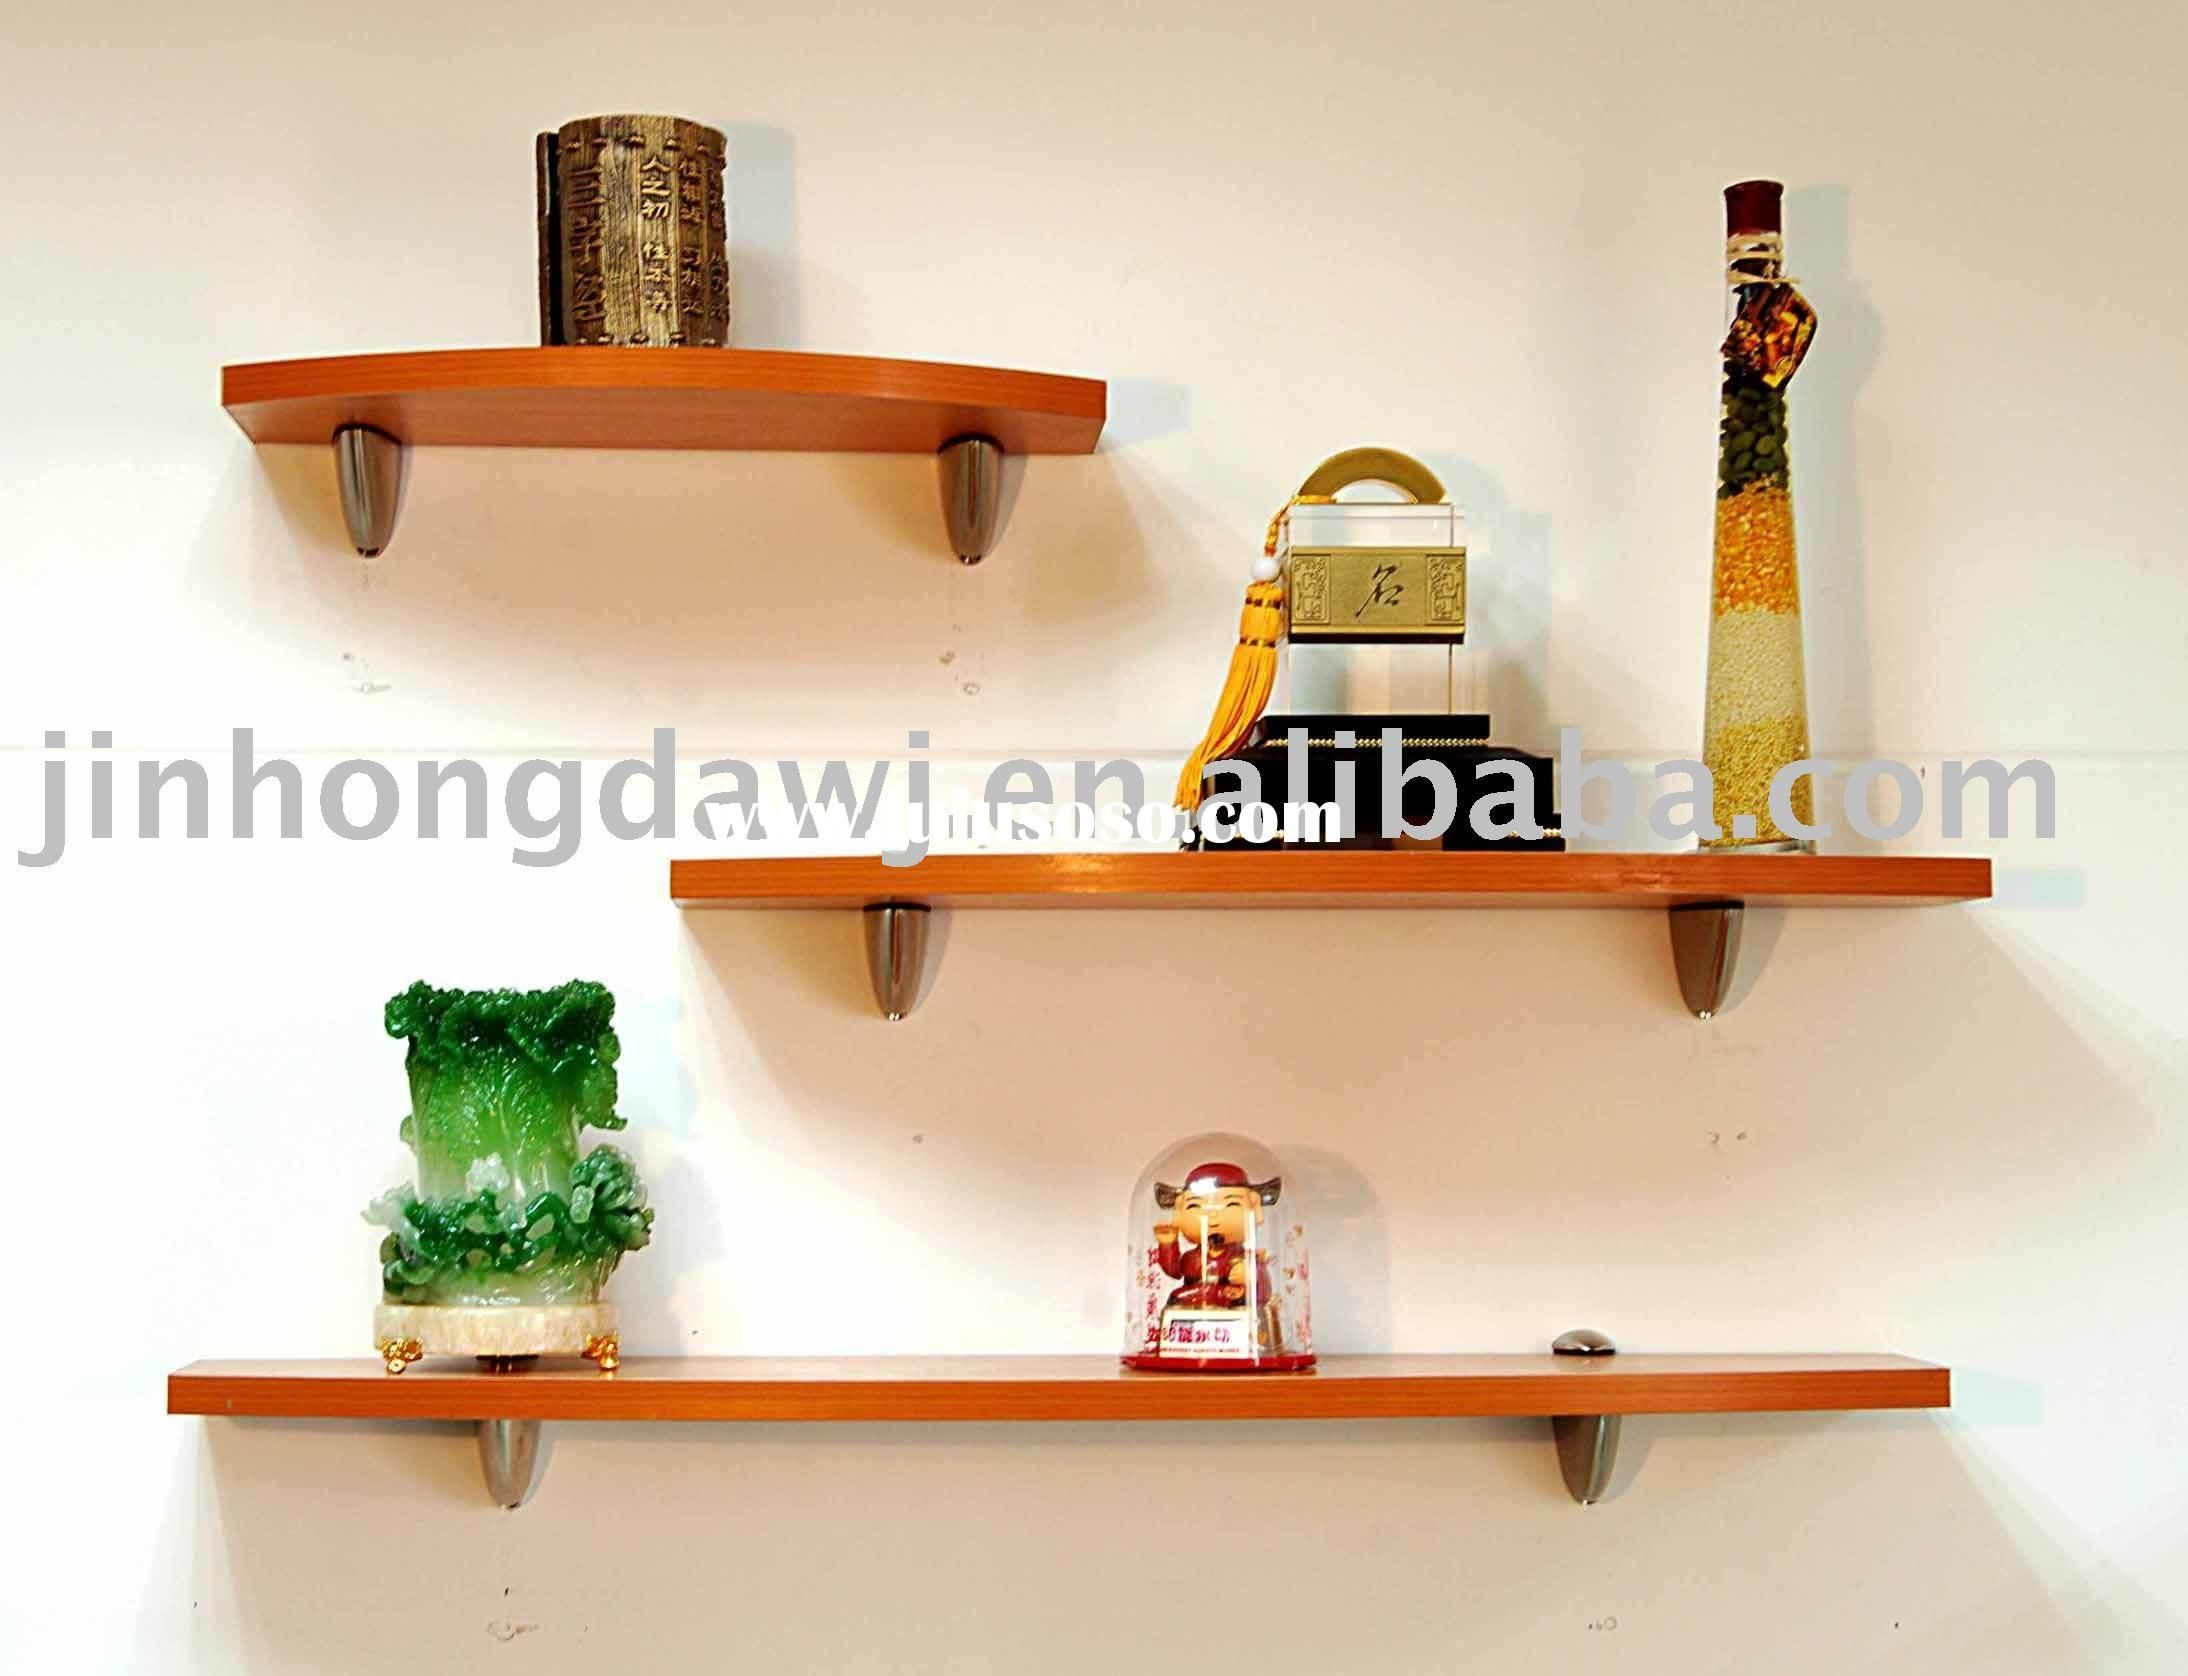 diy string shelving - google search | spice rack | pinterest | diy